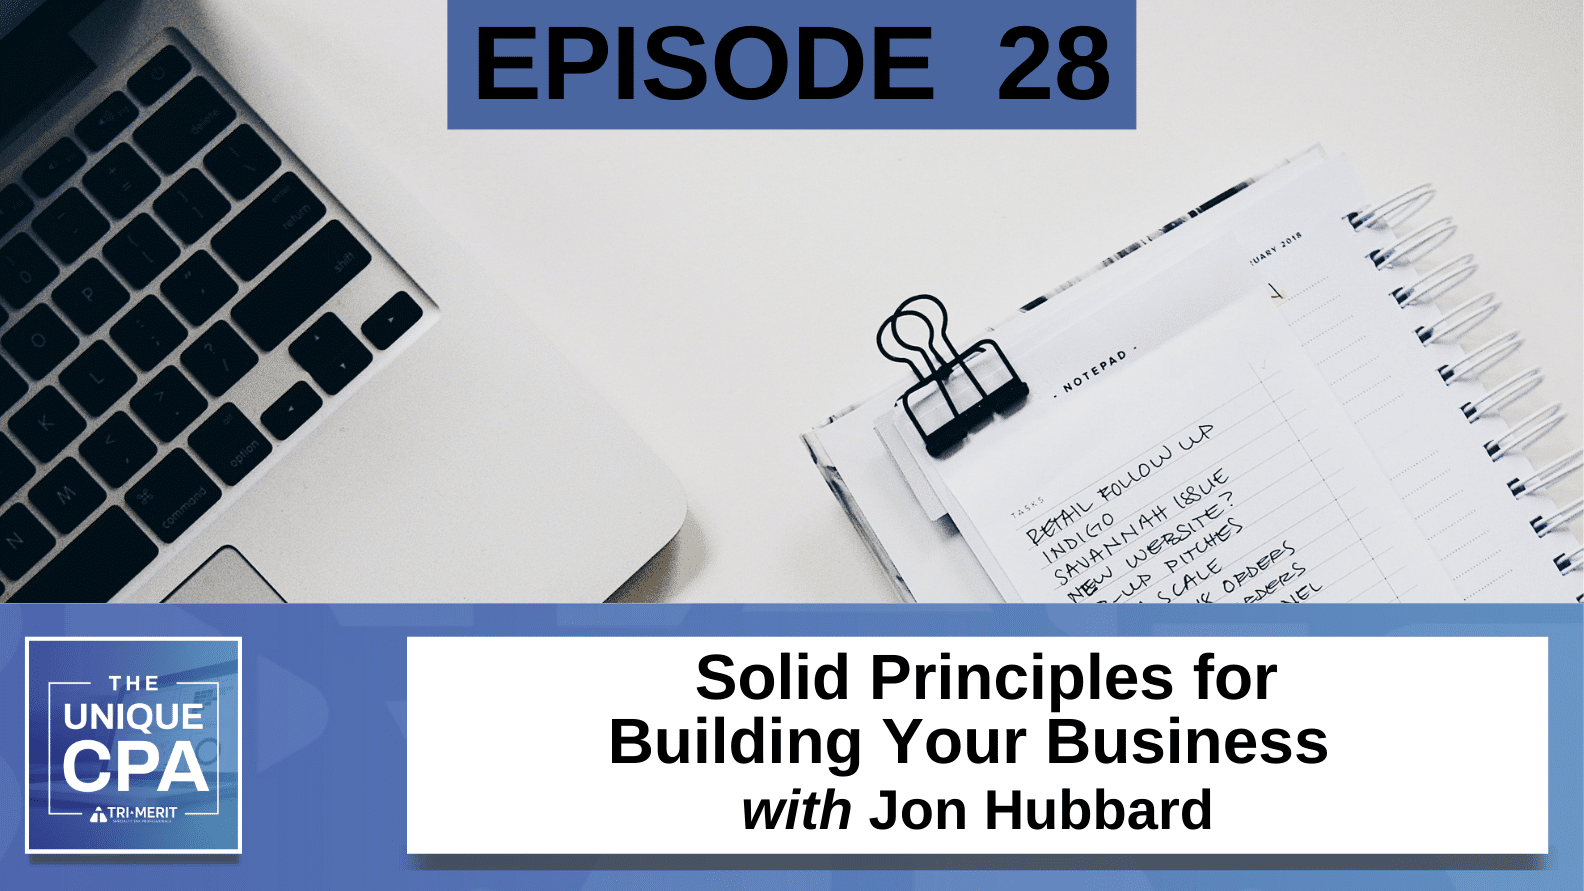 Featured Image The Unique CPA Jon Hubbard - Solid Principles for Building Your Business - Tri-Merit